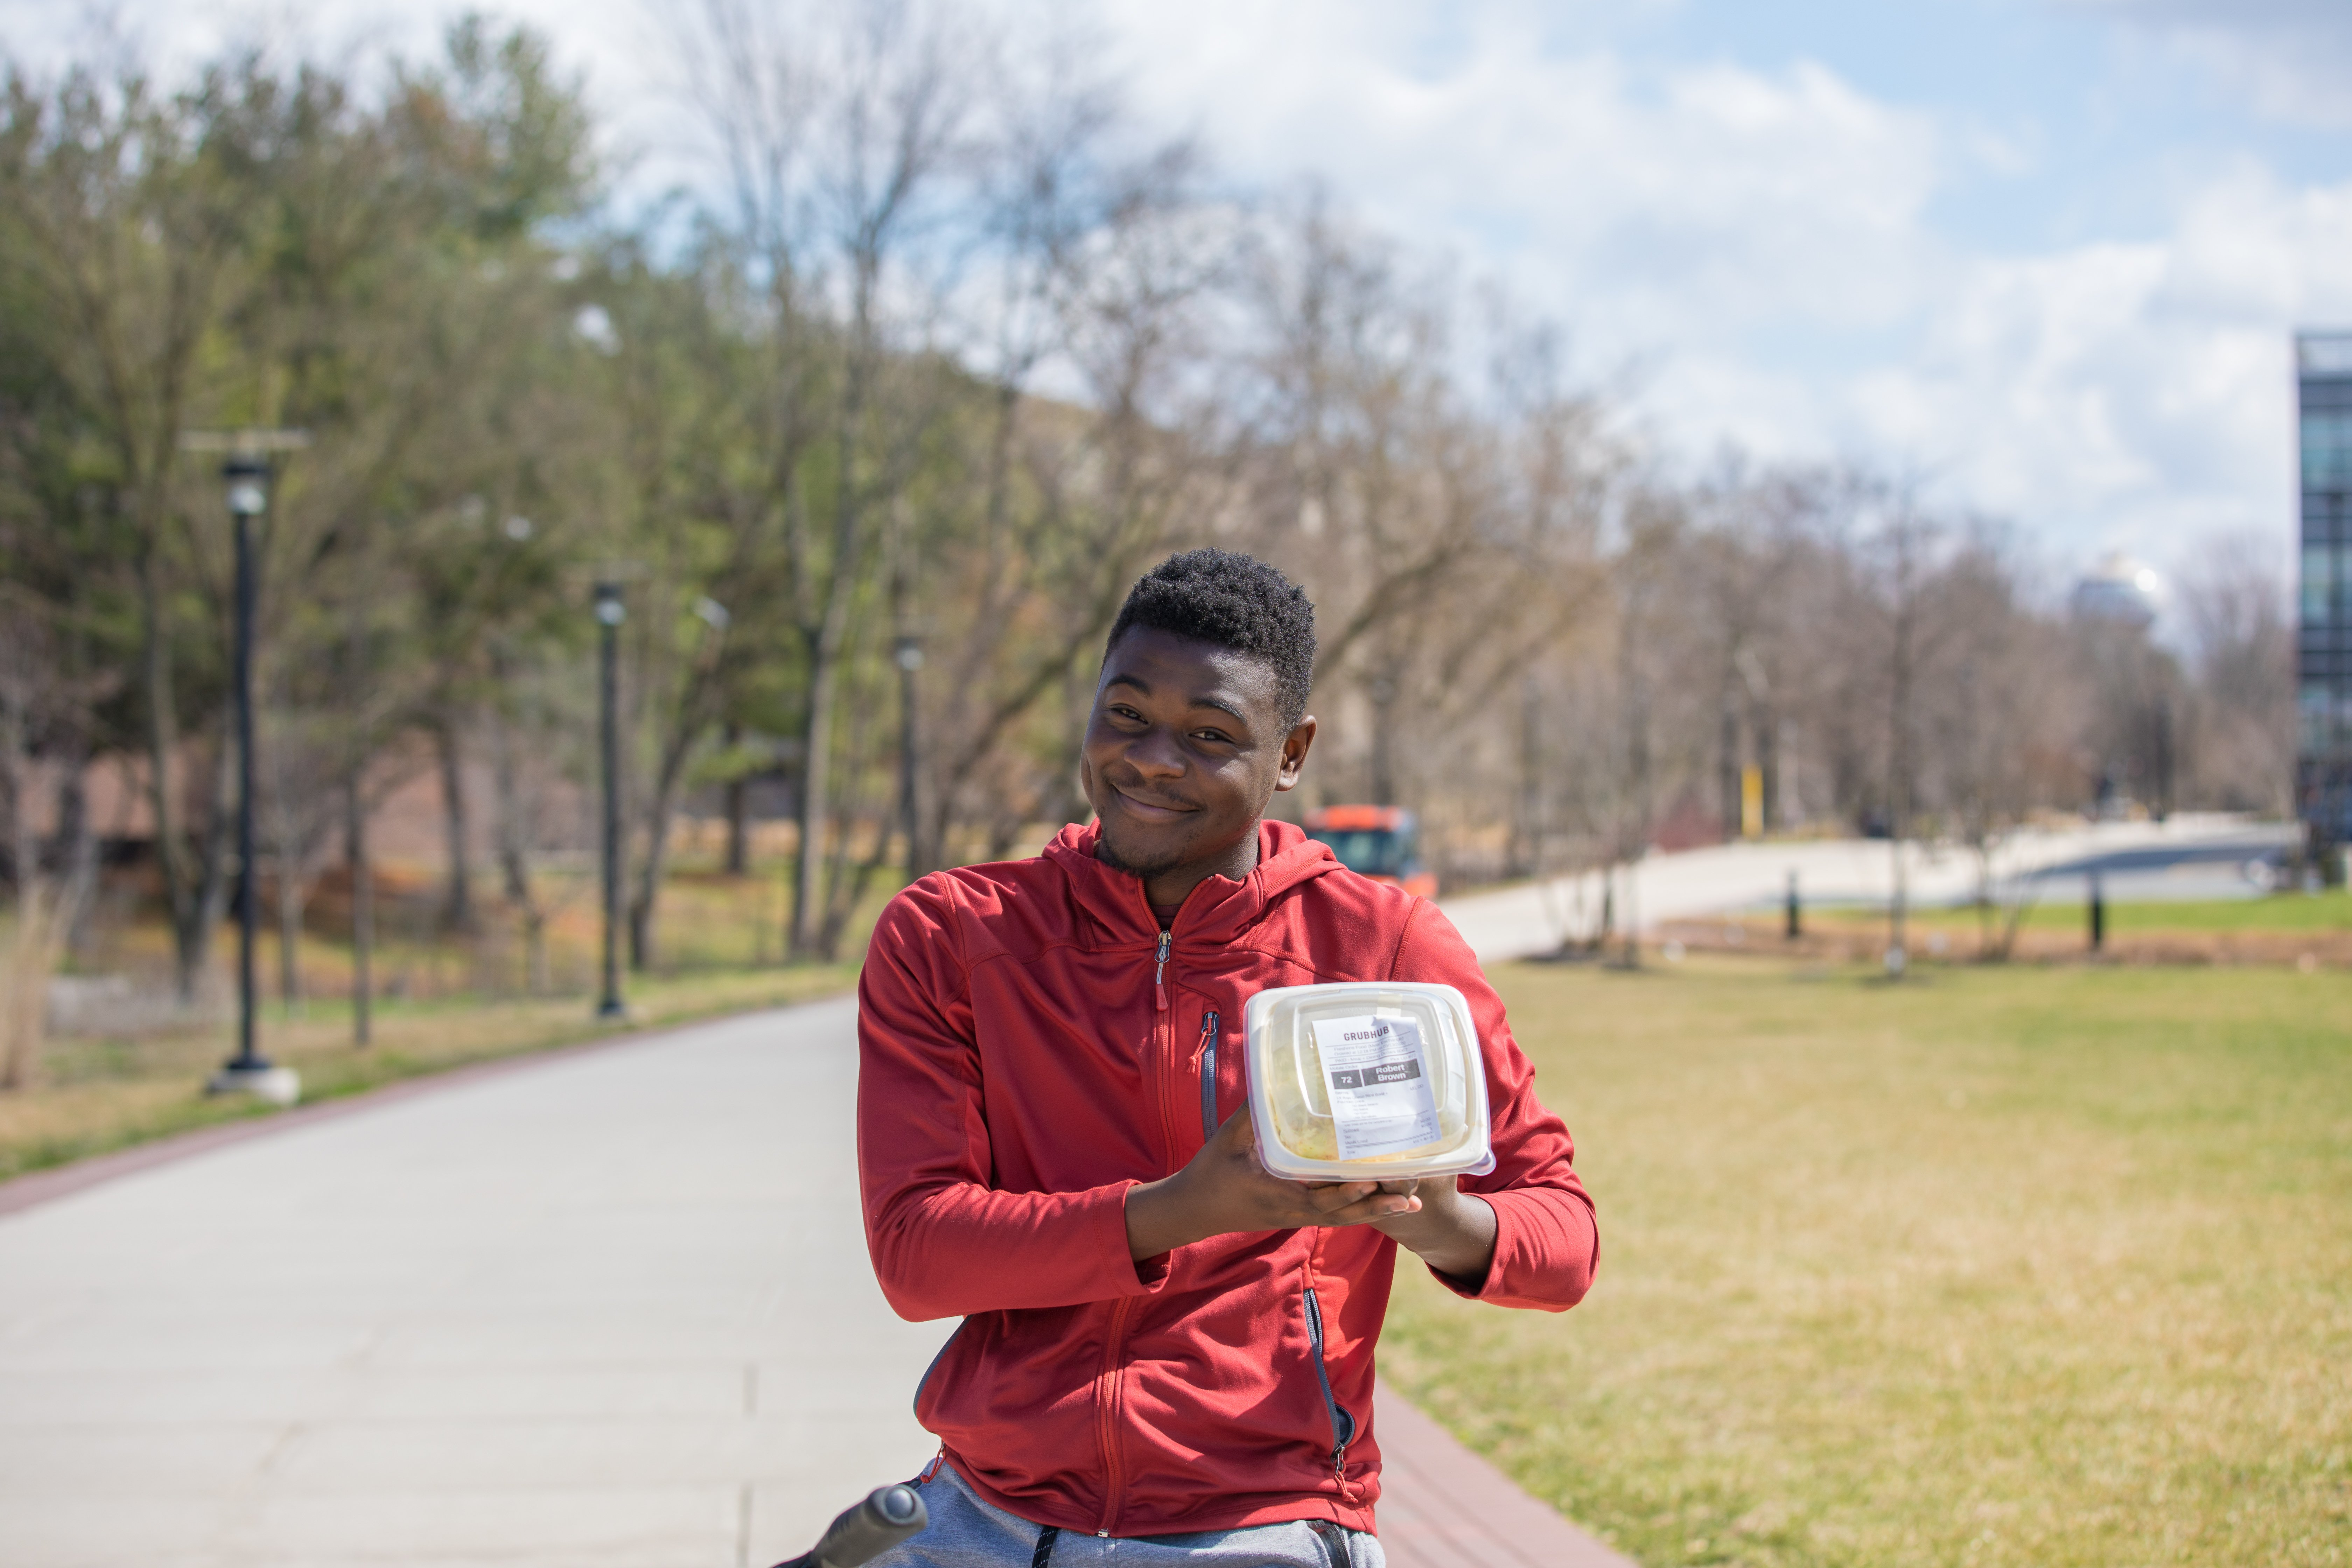 Robert Brown poses with a Freshens rice bowl on campus.